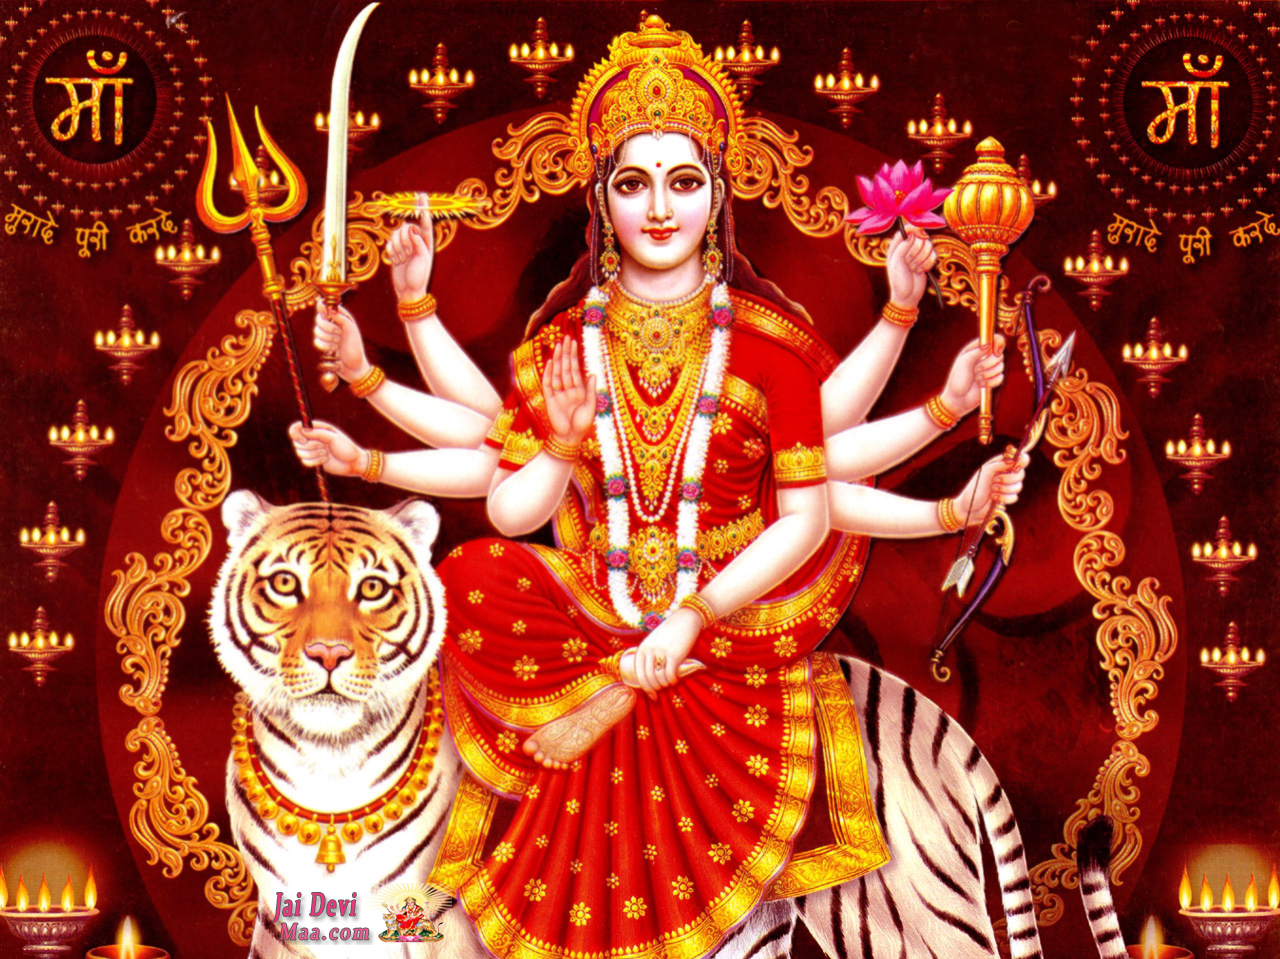 Maa Durga Pictures Wallpapers Images For Dussehra Download News 1280x959